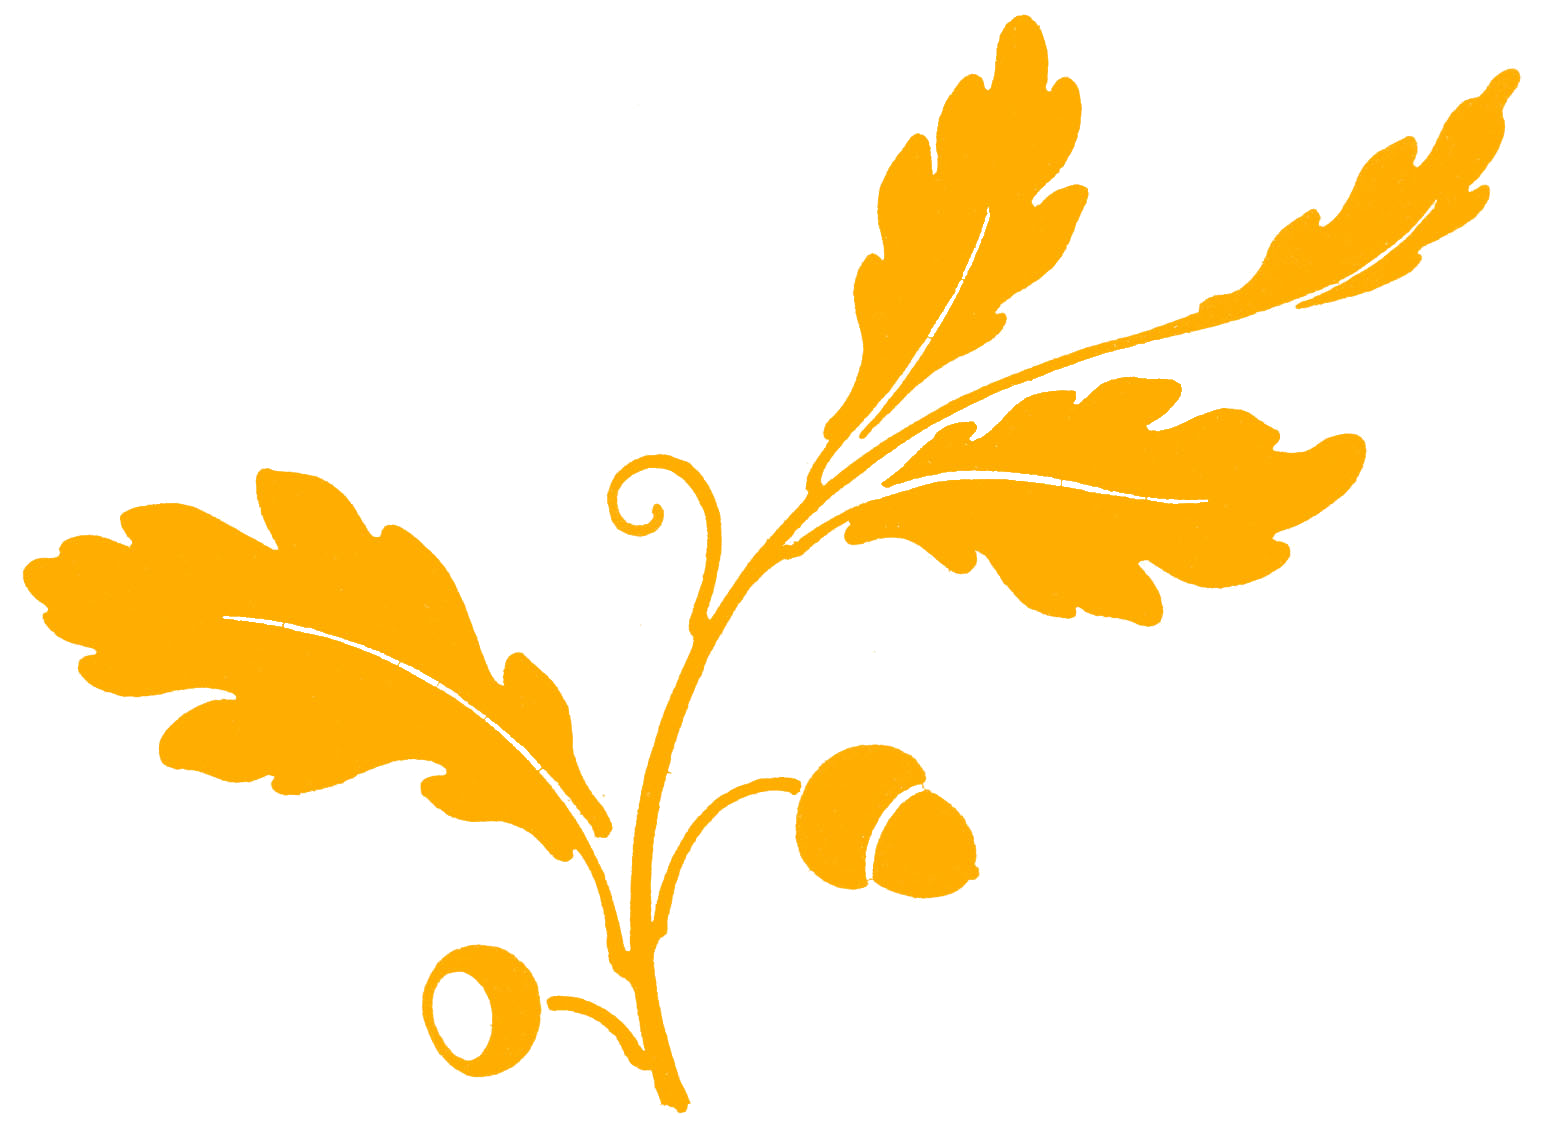 Yellow oak leaf clipart clipart free stock leaves | Craft Thanksgiving | Leaf silhouette, Oak leaf ... clipart free stock